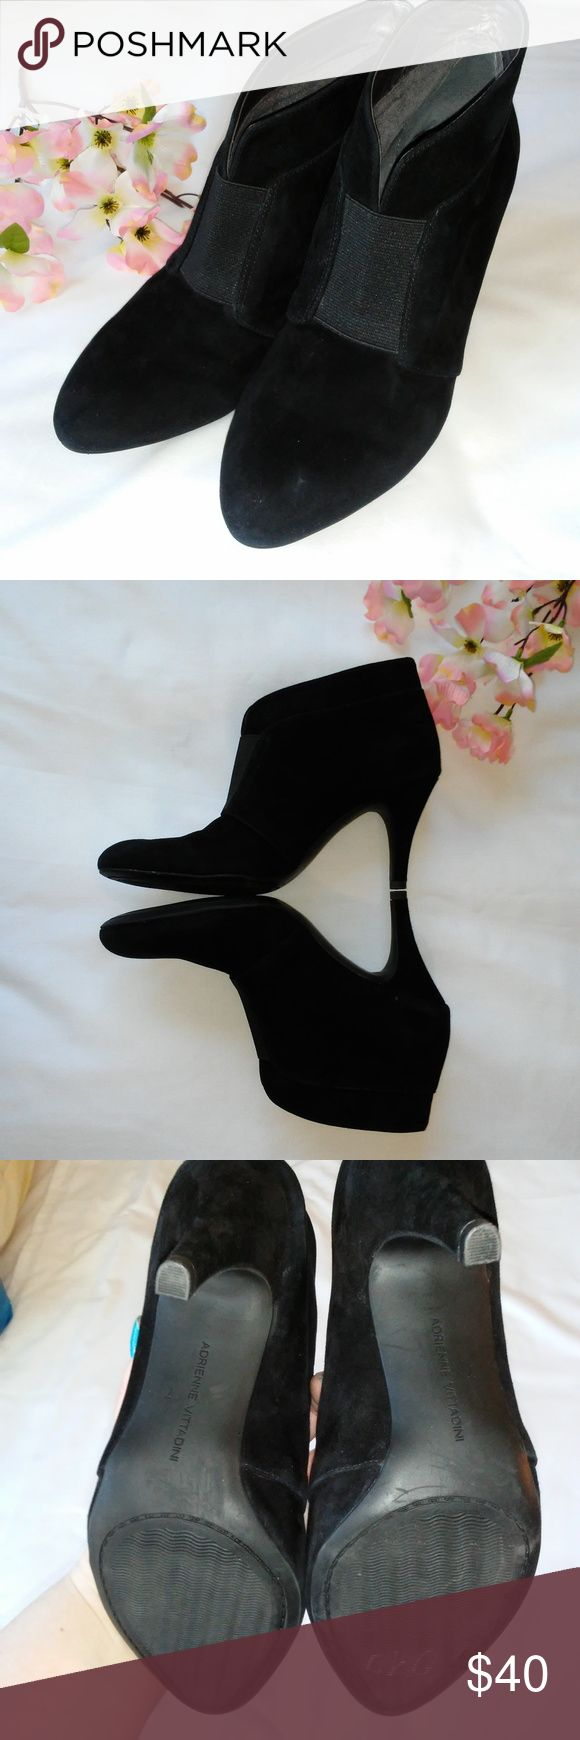 Adrienne Vittadini Trippin Suede Ankle Boot Size 7 Adrienne Vittadini trippin suede ankle boot size 7. Great condition. Leather upper and  man made balance. There are a few scuff shown in pictures but wont be noticeable while wearing them. Heel and sole in great condition. Adrienne Vittadini Shoes Heeled Boots